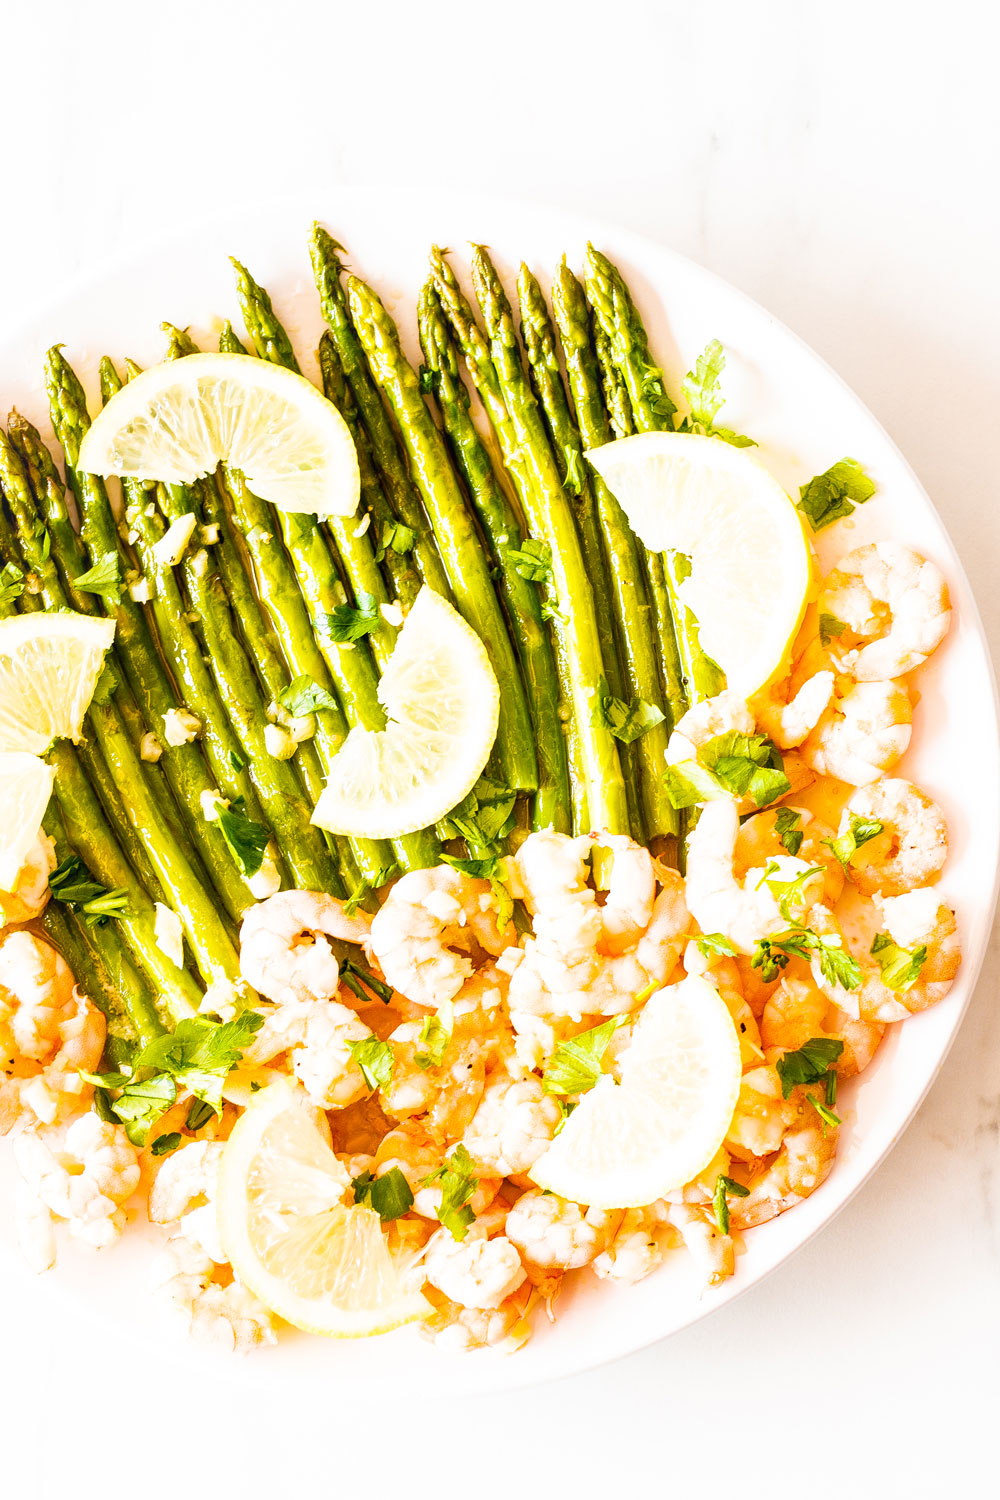 This Sauteed Garlic Shrimp with Asparagus recipe is perfect for a healthy, quick, and delicious dinner! It's packed with vitamins, minerals, protein, and fiber, and it's going to become your new favorite seafood dish! https://www.spotebi.com/recipes/sauteed-garlic-shrimp-asparagus/